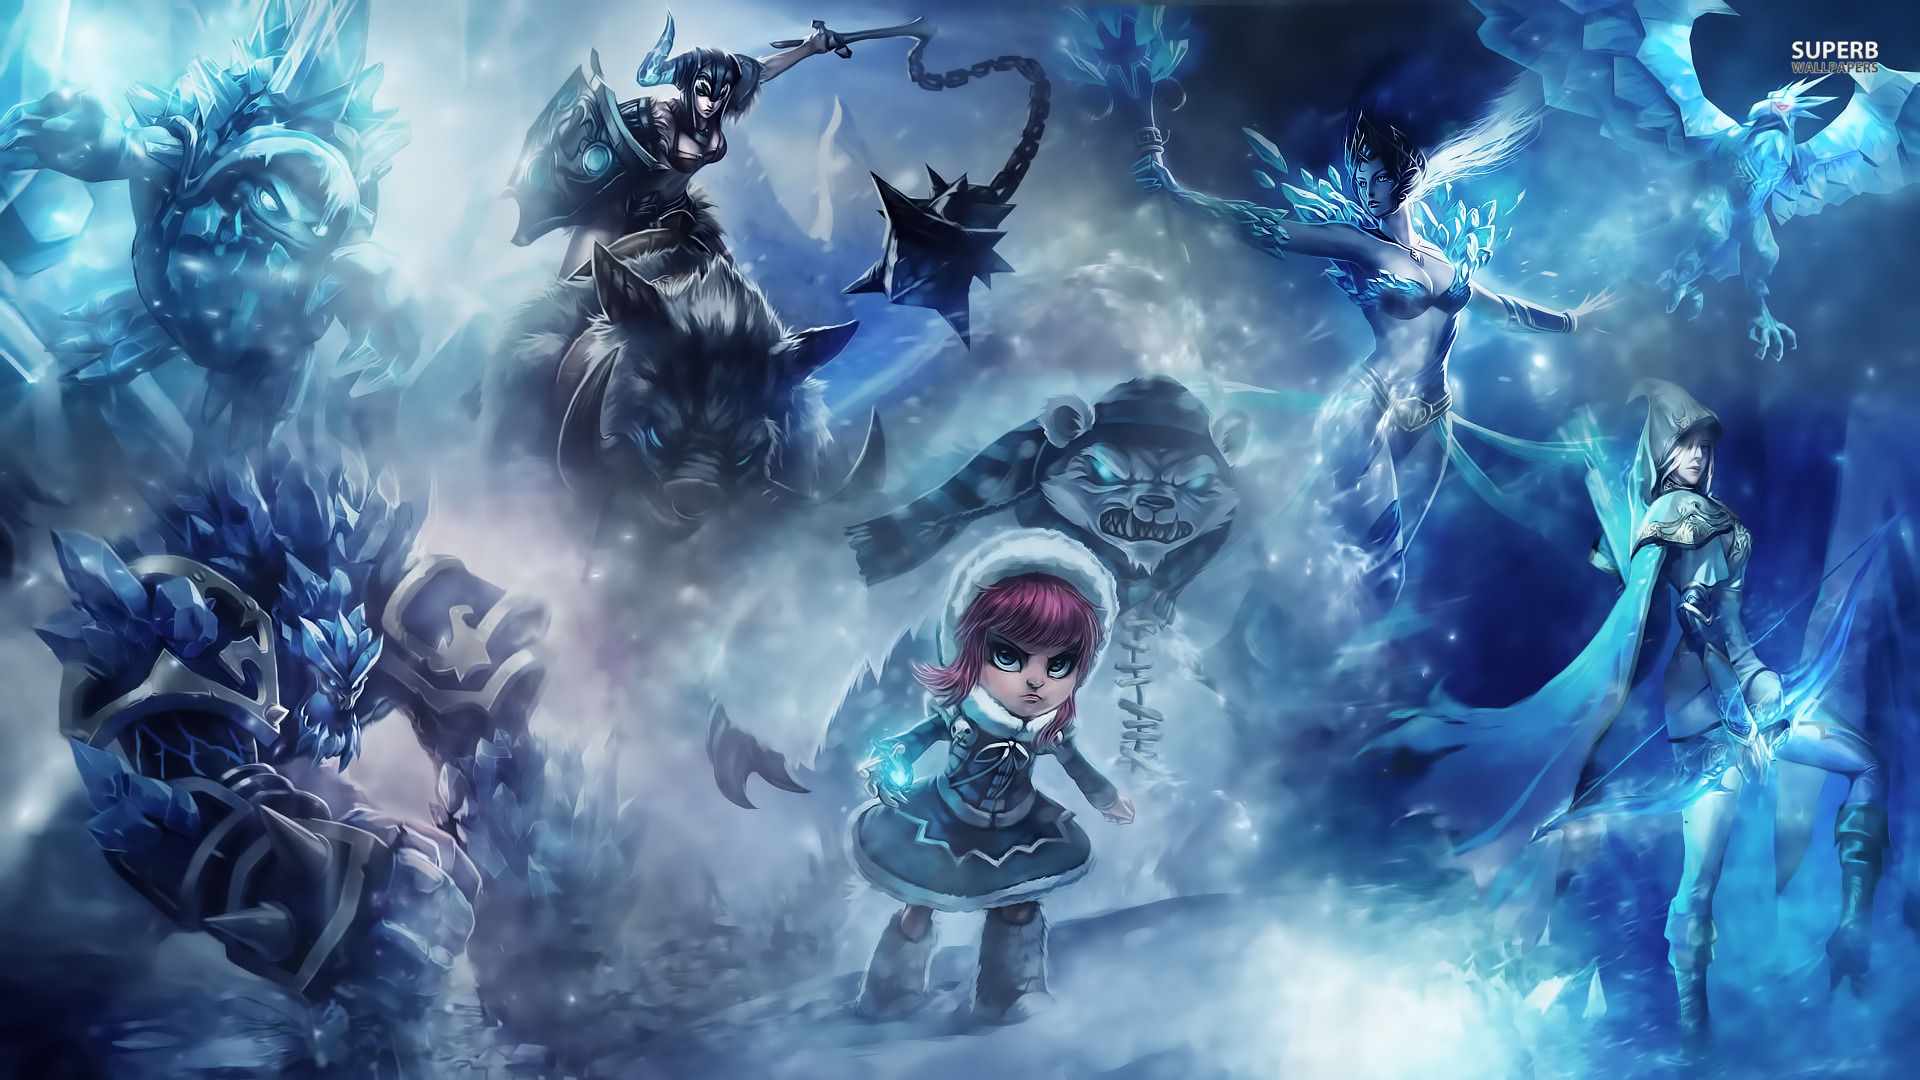 League Of Legends Wallpapers: Marvellous League Legends Hd Wallpaper 1920x1080px